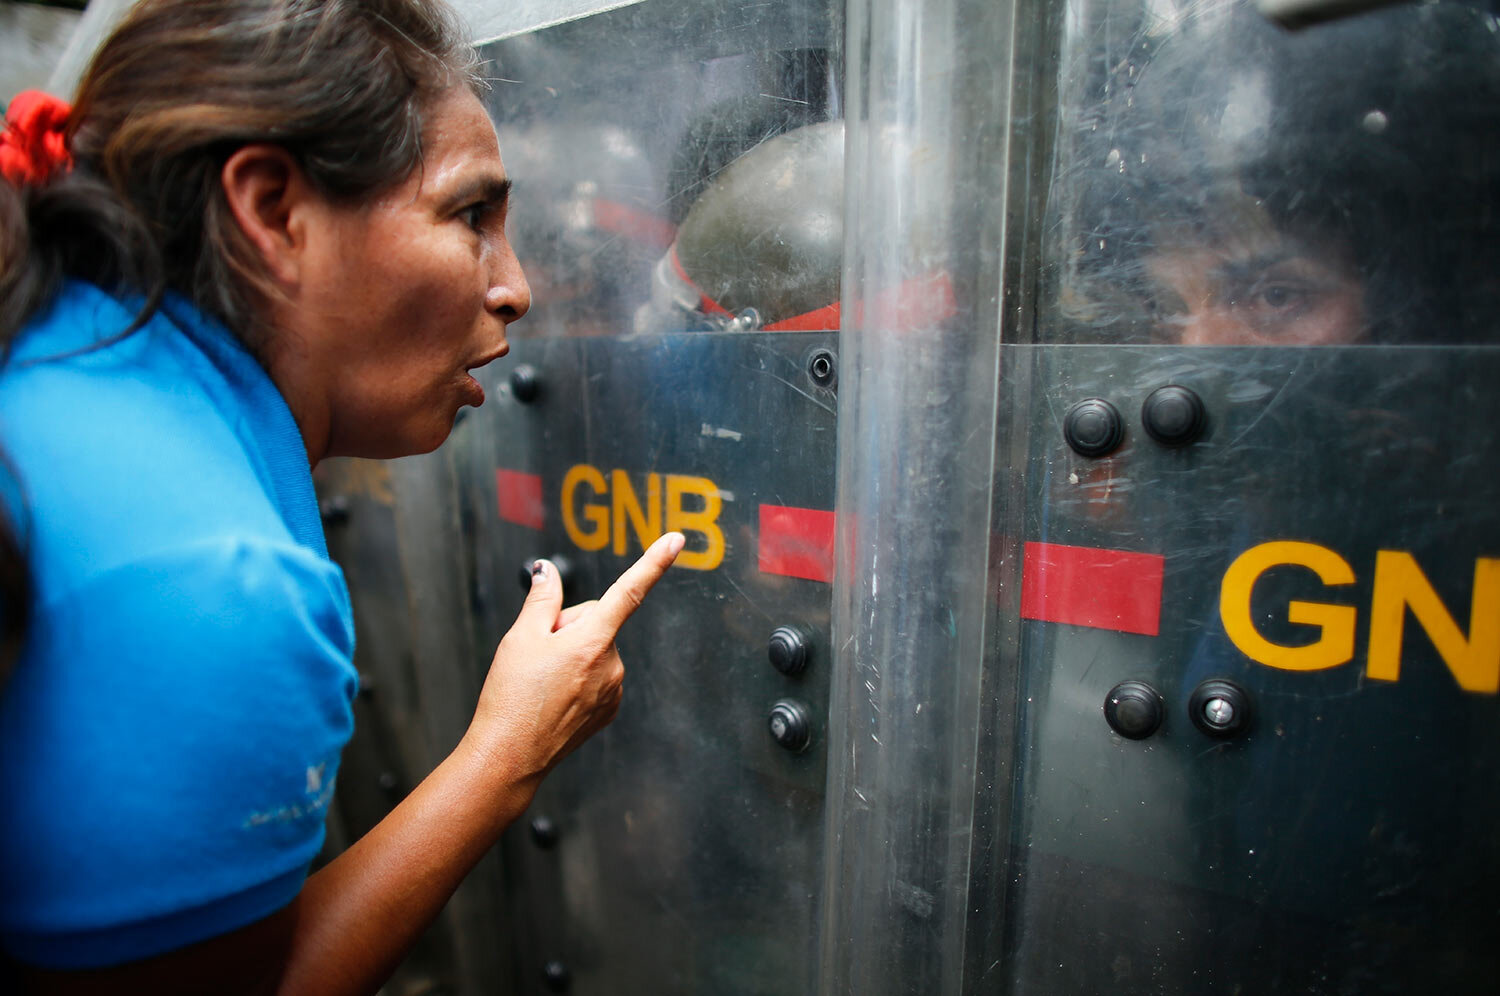 An opposition protester talks to soldiers of the National Guard blocking the way to the headquarters of the state electricity company in Caracas, Venezuela, Thursday, Oct. 24, 2019. Demonstrators mobilized in support of the inhabitants of the western state of Zulia, who suffer daily power outages that sometimes last more than 20 hours. (AP Photo/Ariana Cubillos)